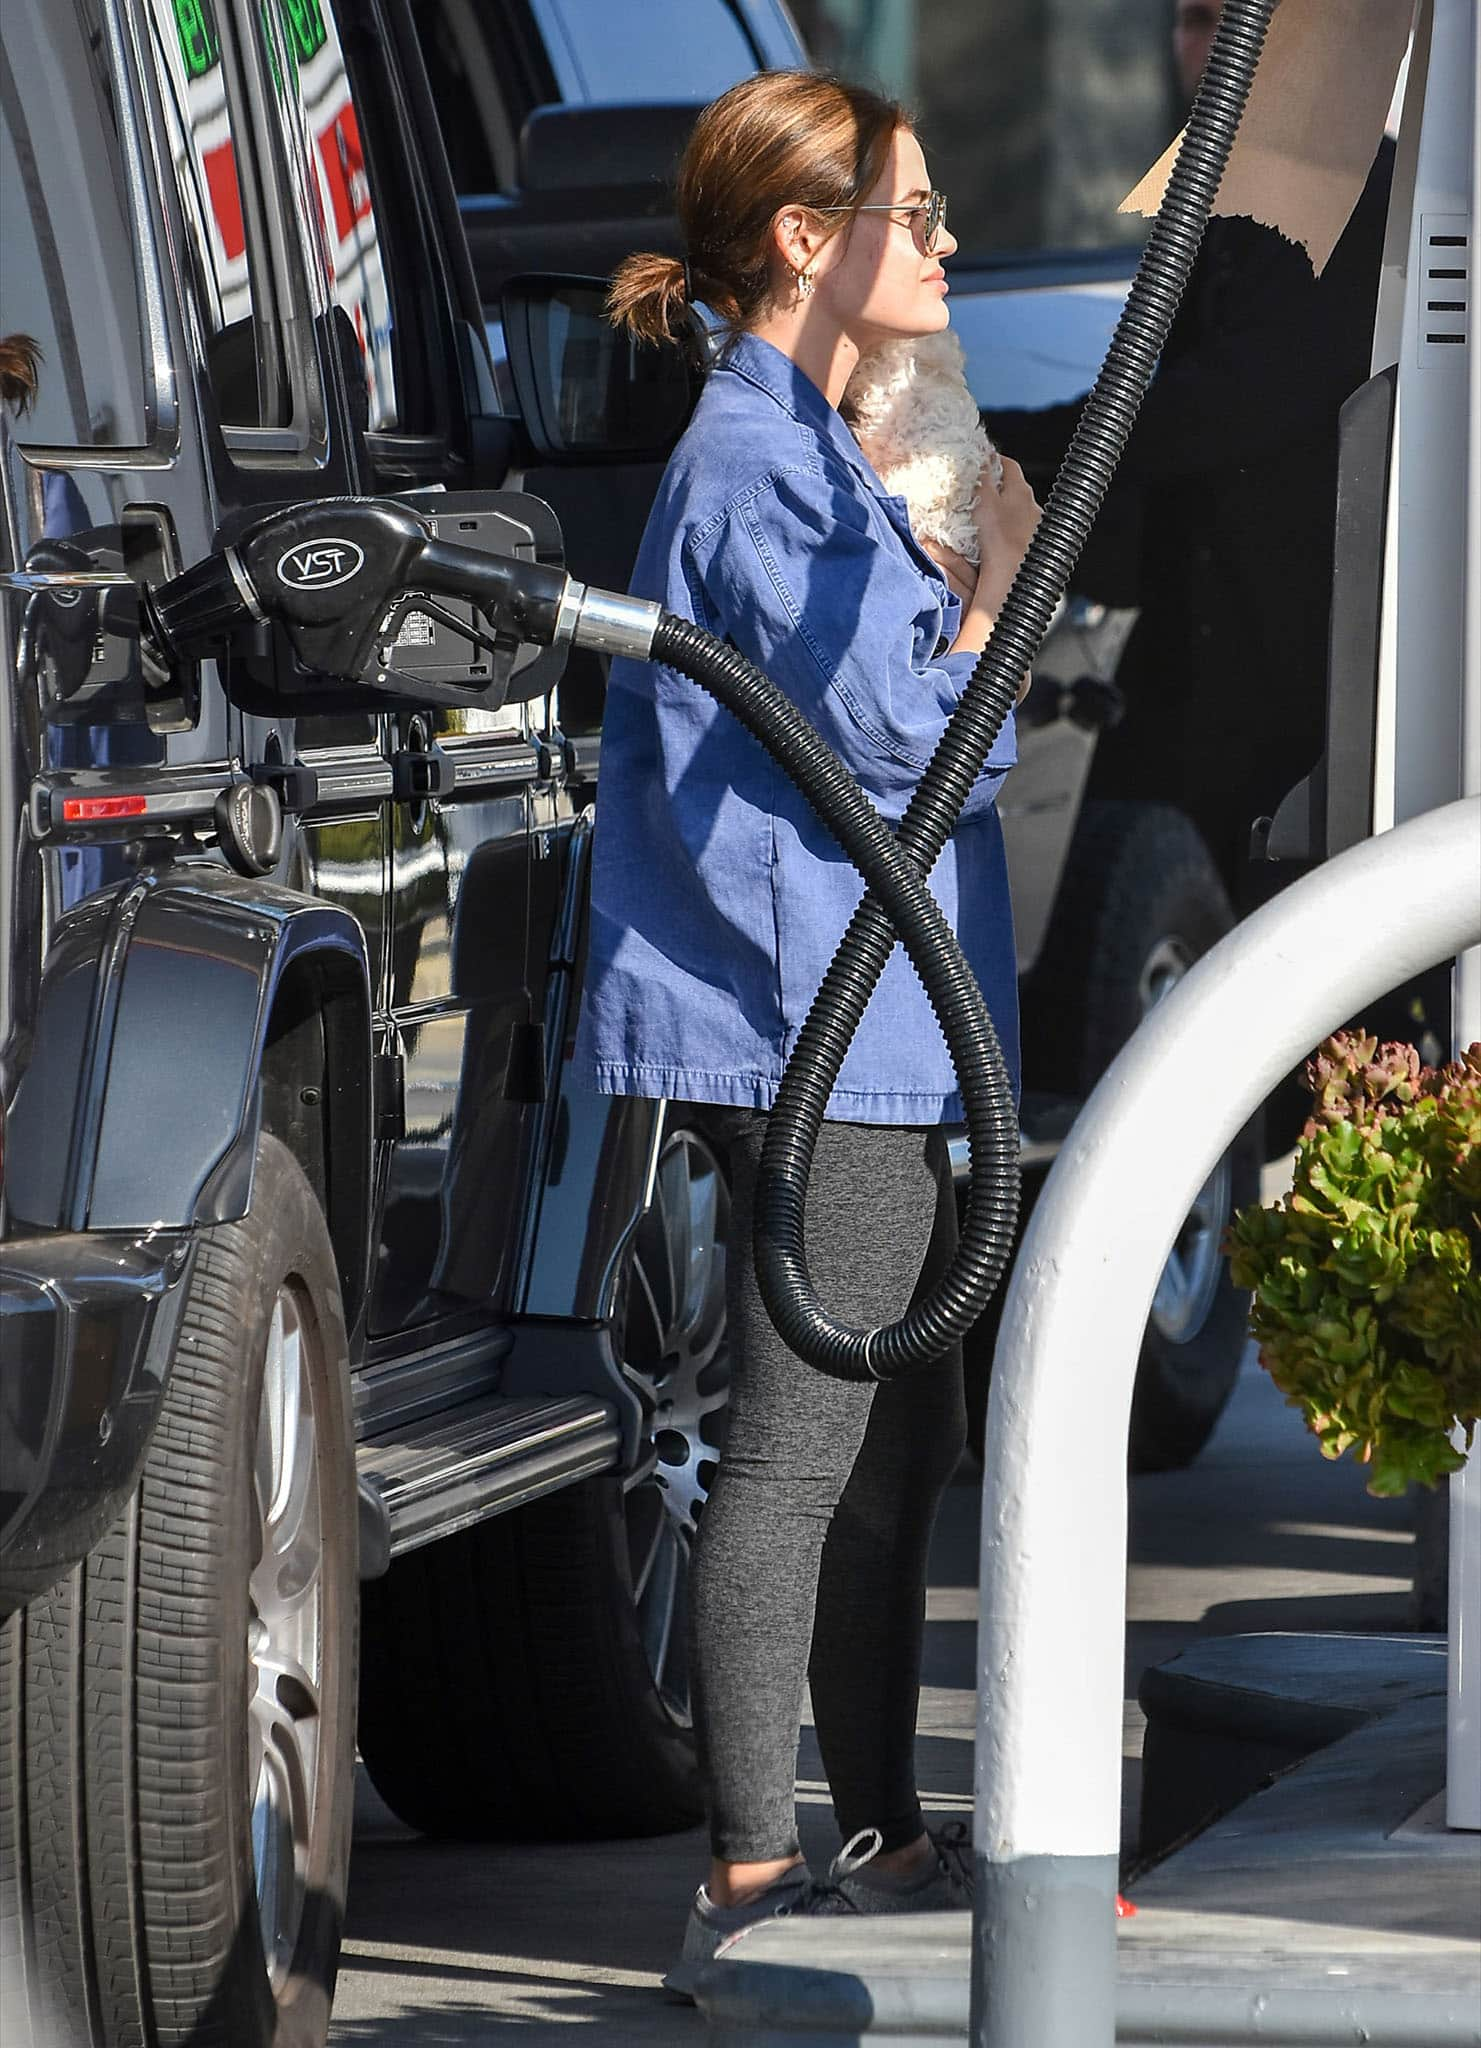 Lucy Hale fills up her car with her new dog at a gas station in Los Angeles on February 10, 2021